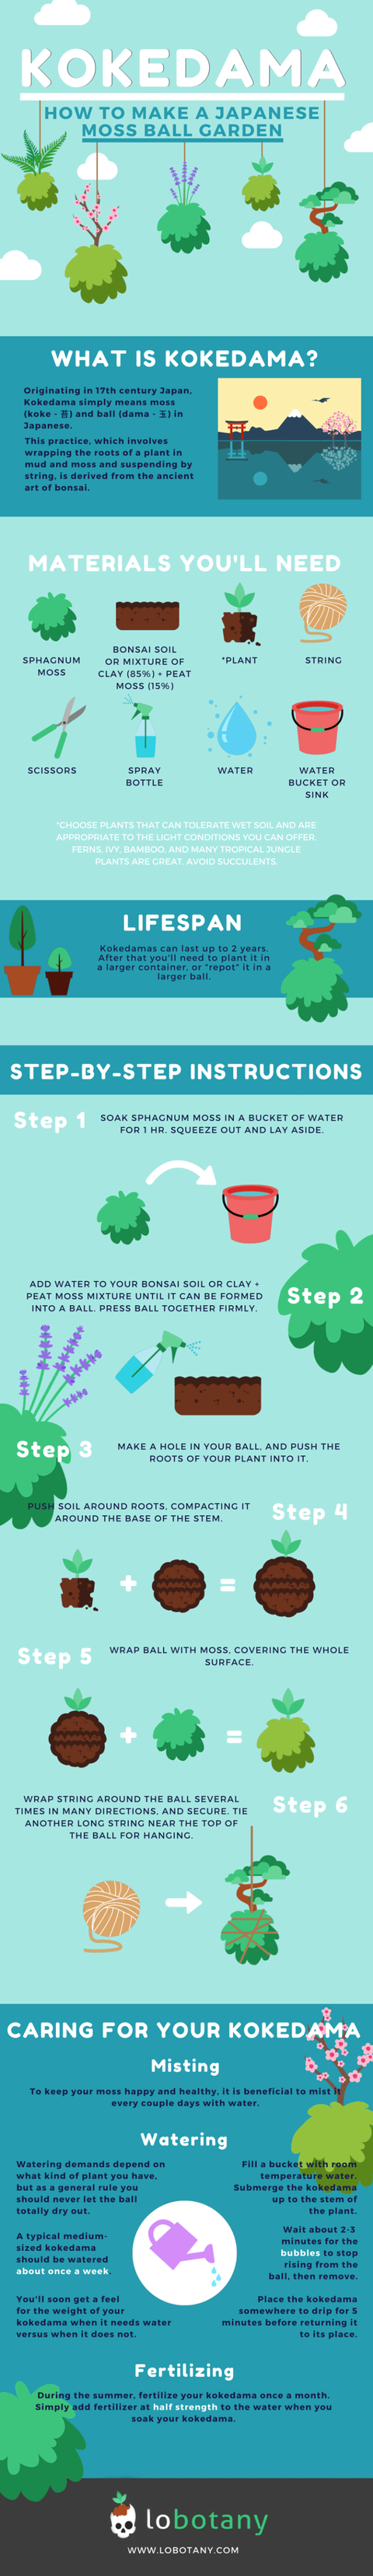 How to make a kokedama - a Japanese moss ball - infographic